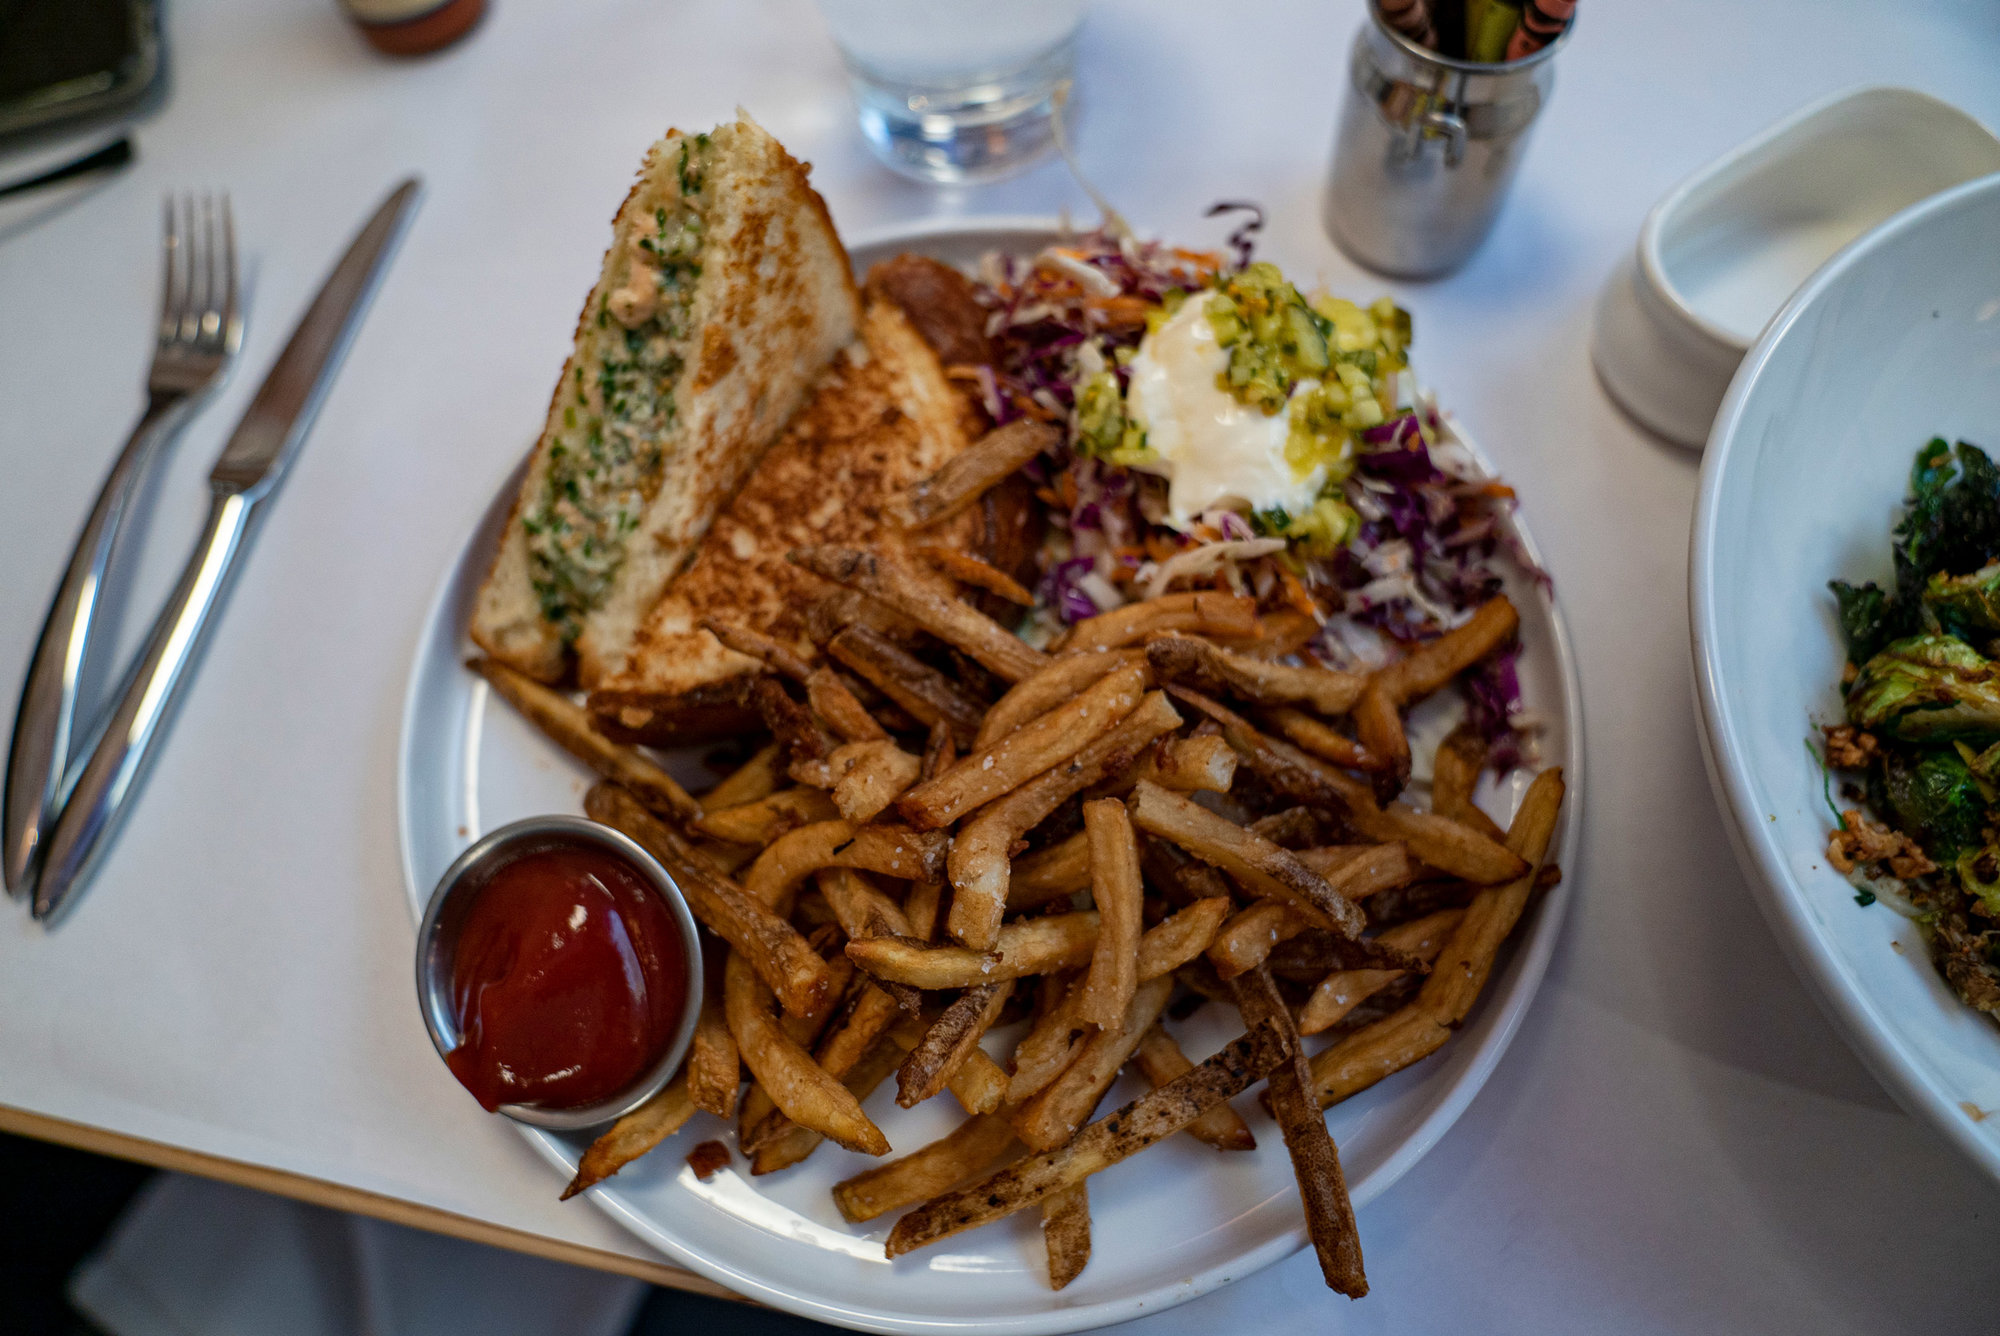 Jax Fish House and Oyster Bar has an array of fish sandwiches like this Salmon sammy | Colorado Springs Homes